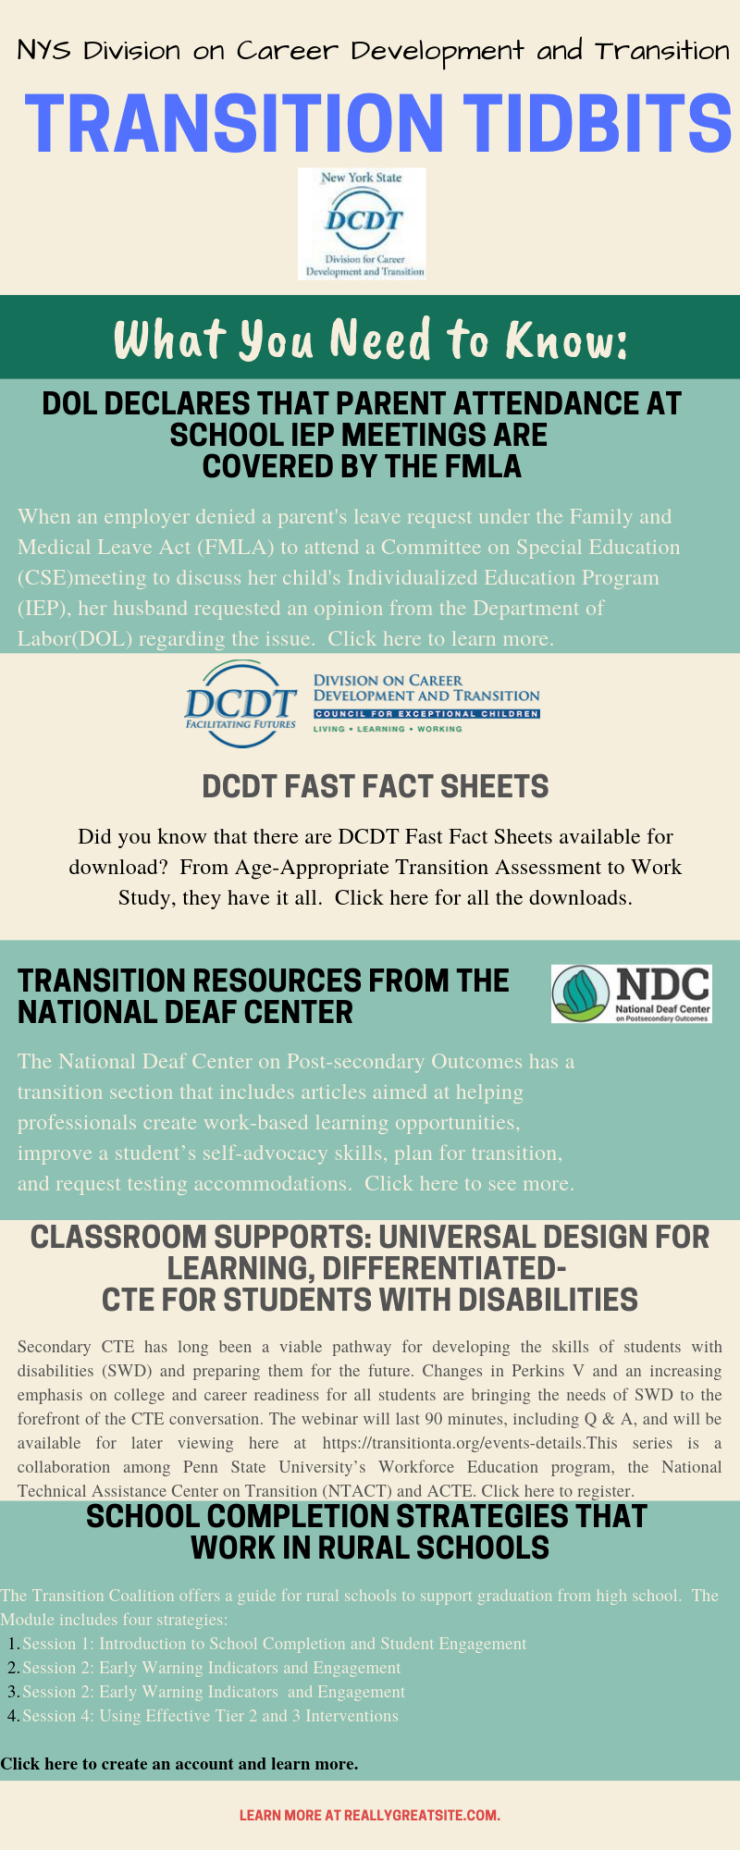 NYS DCDT Transition Tidbits-September